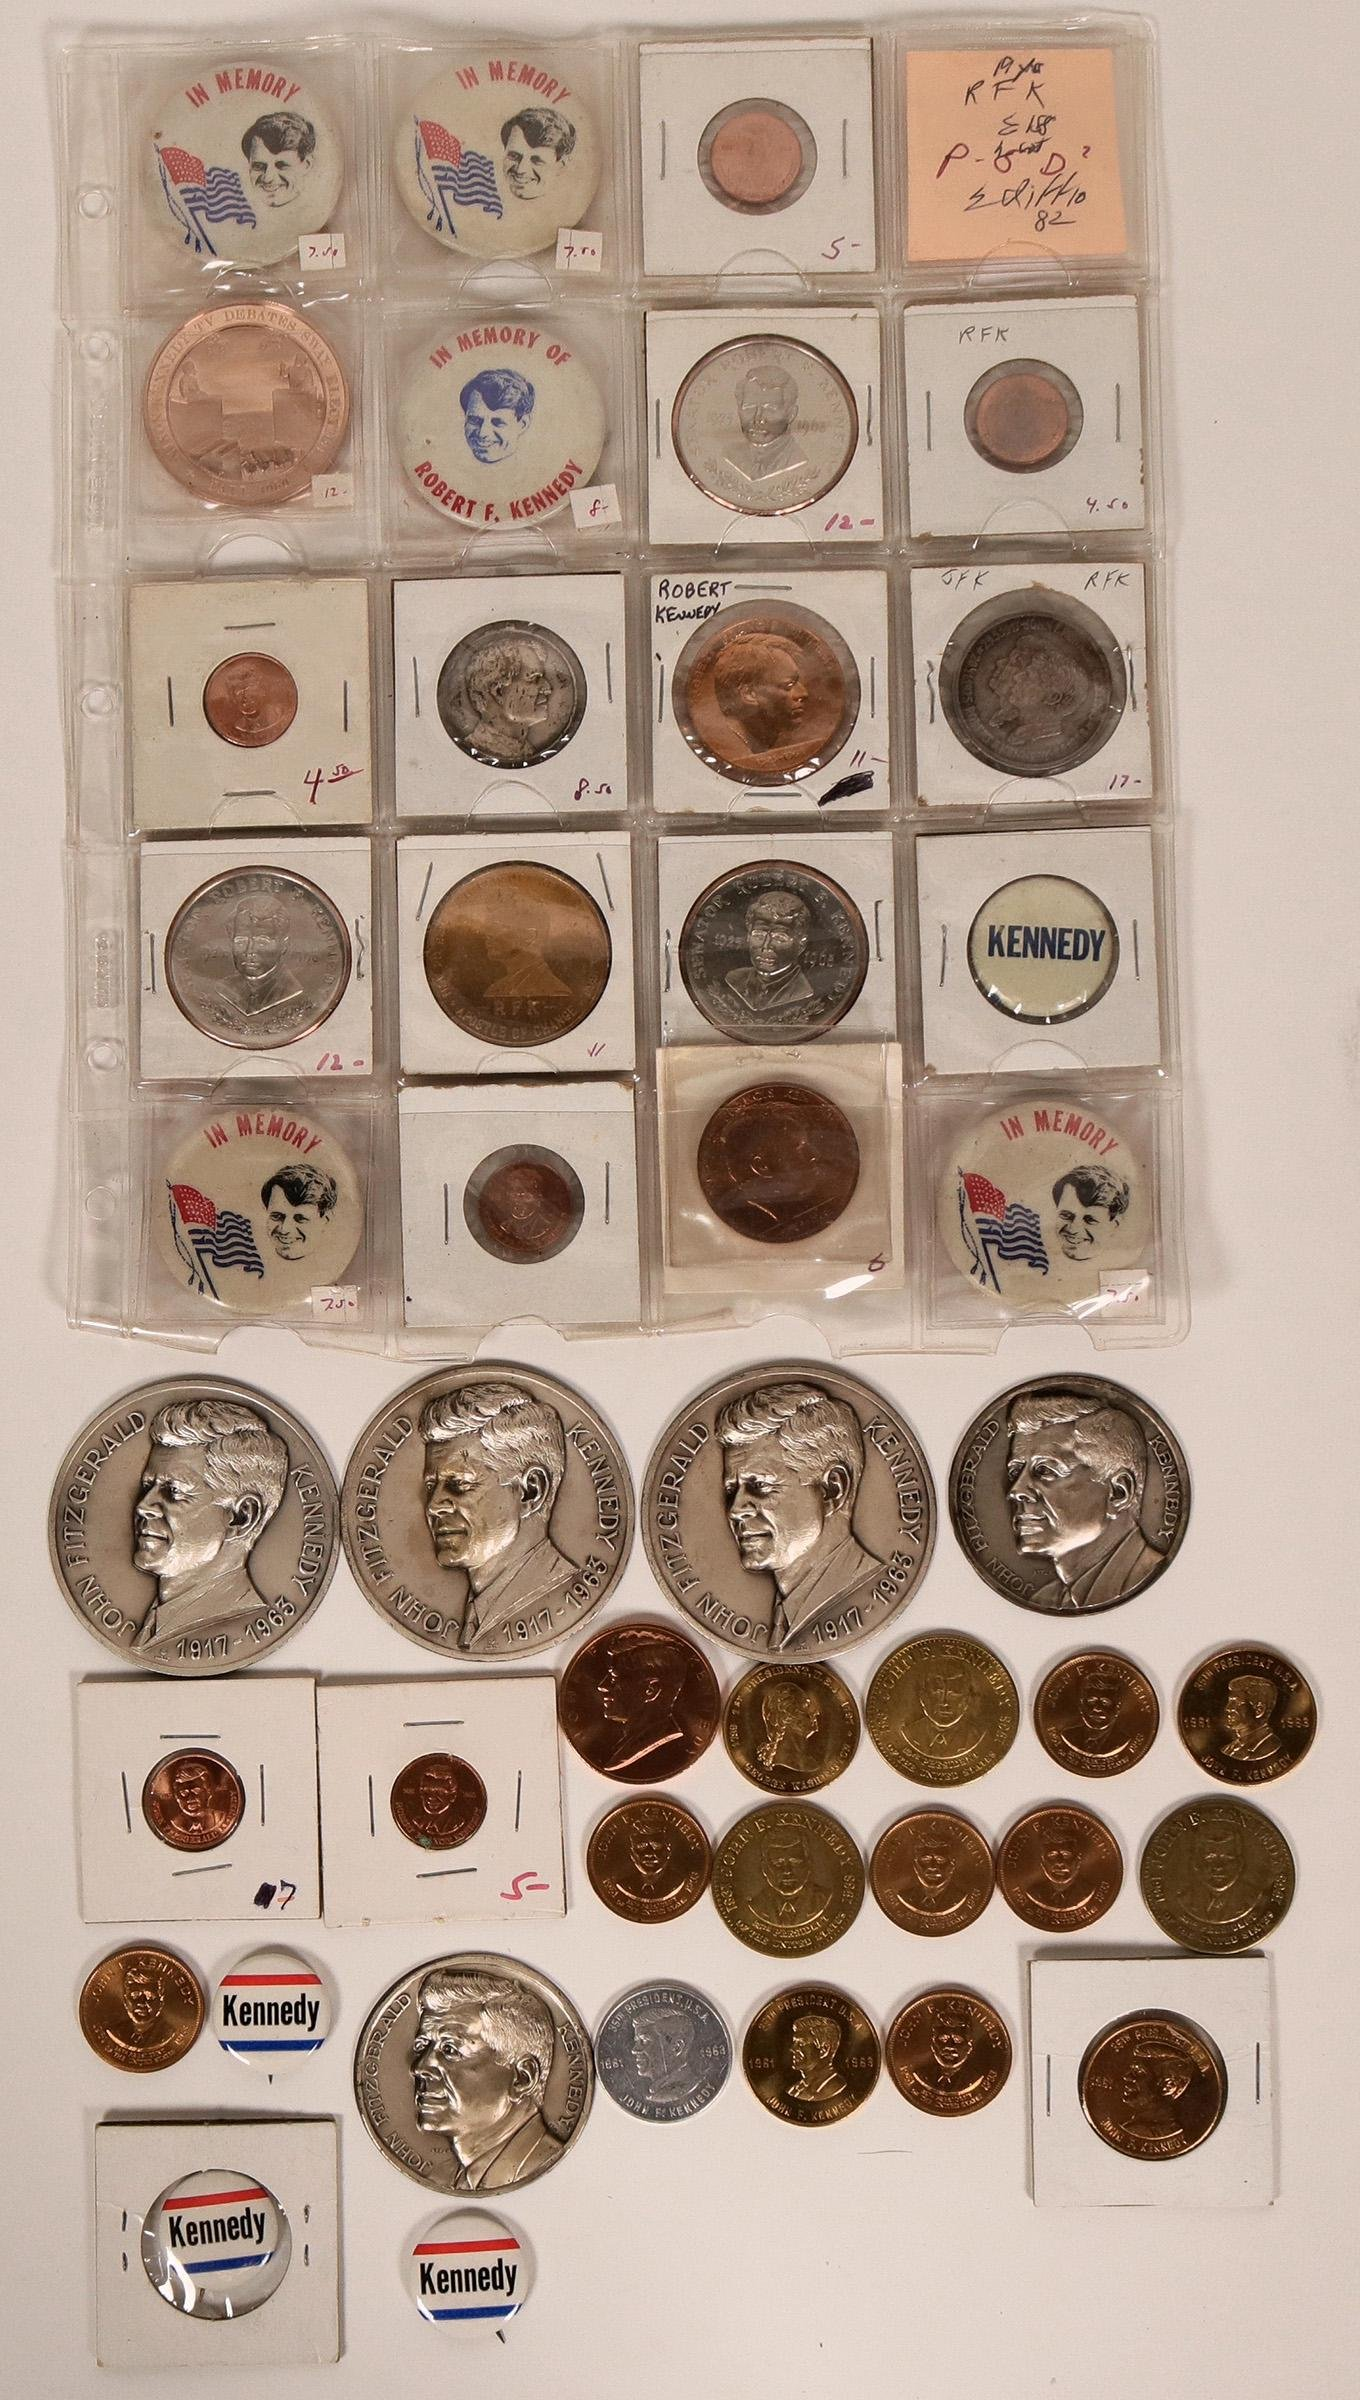 Kennedy Campaign Buttons &  Coins  (119633)